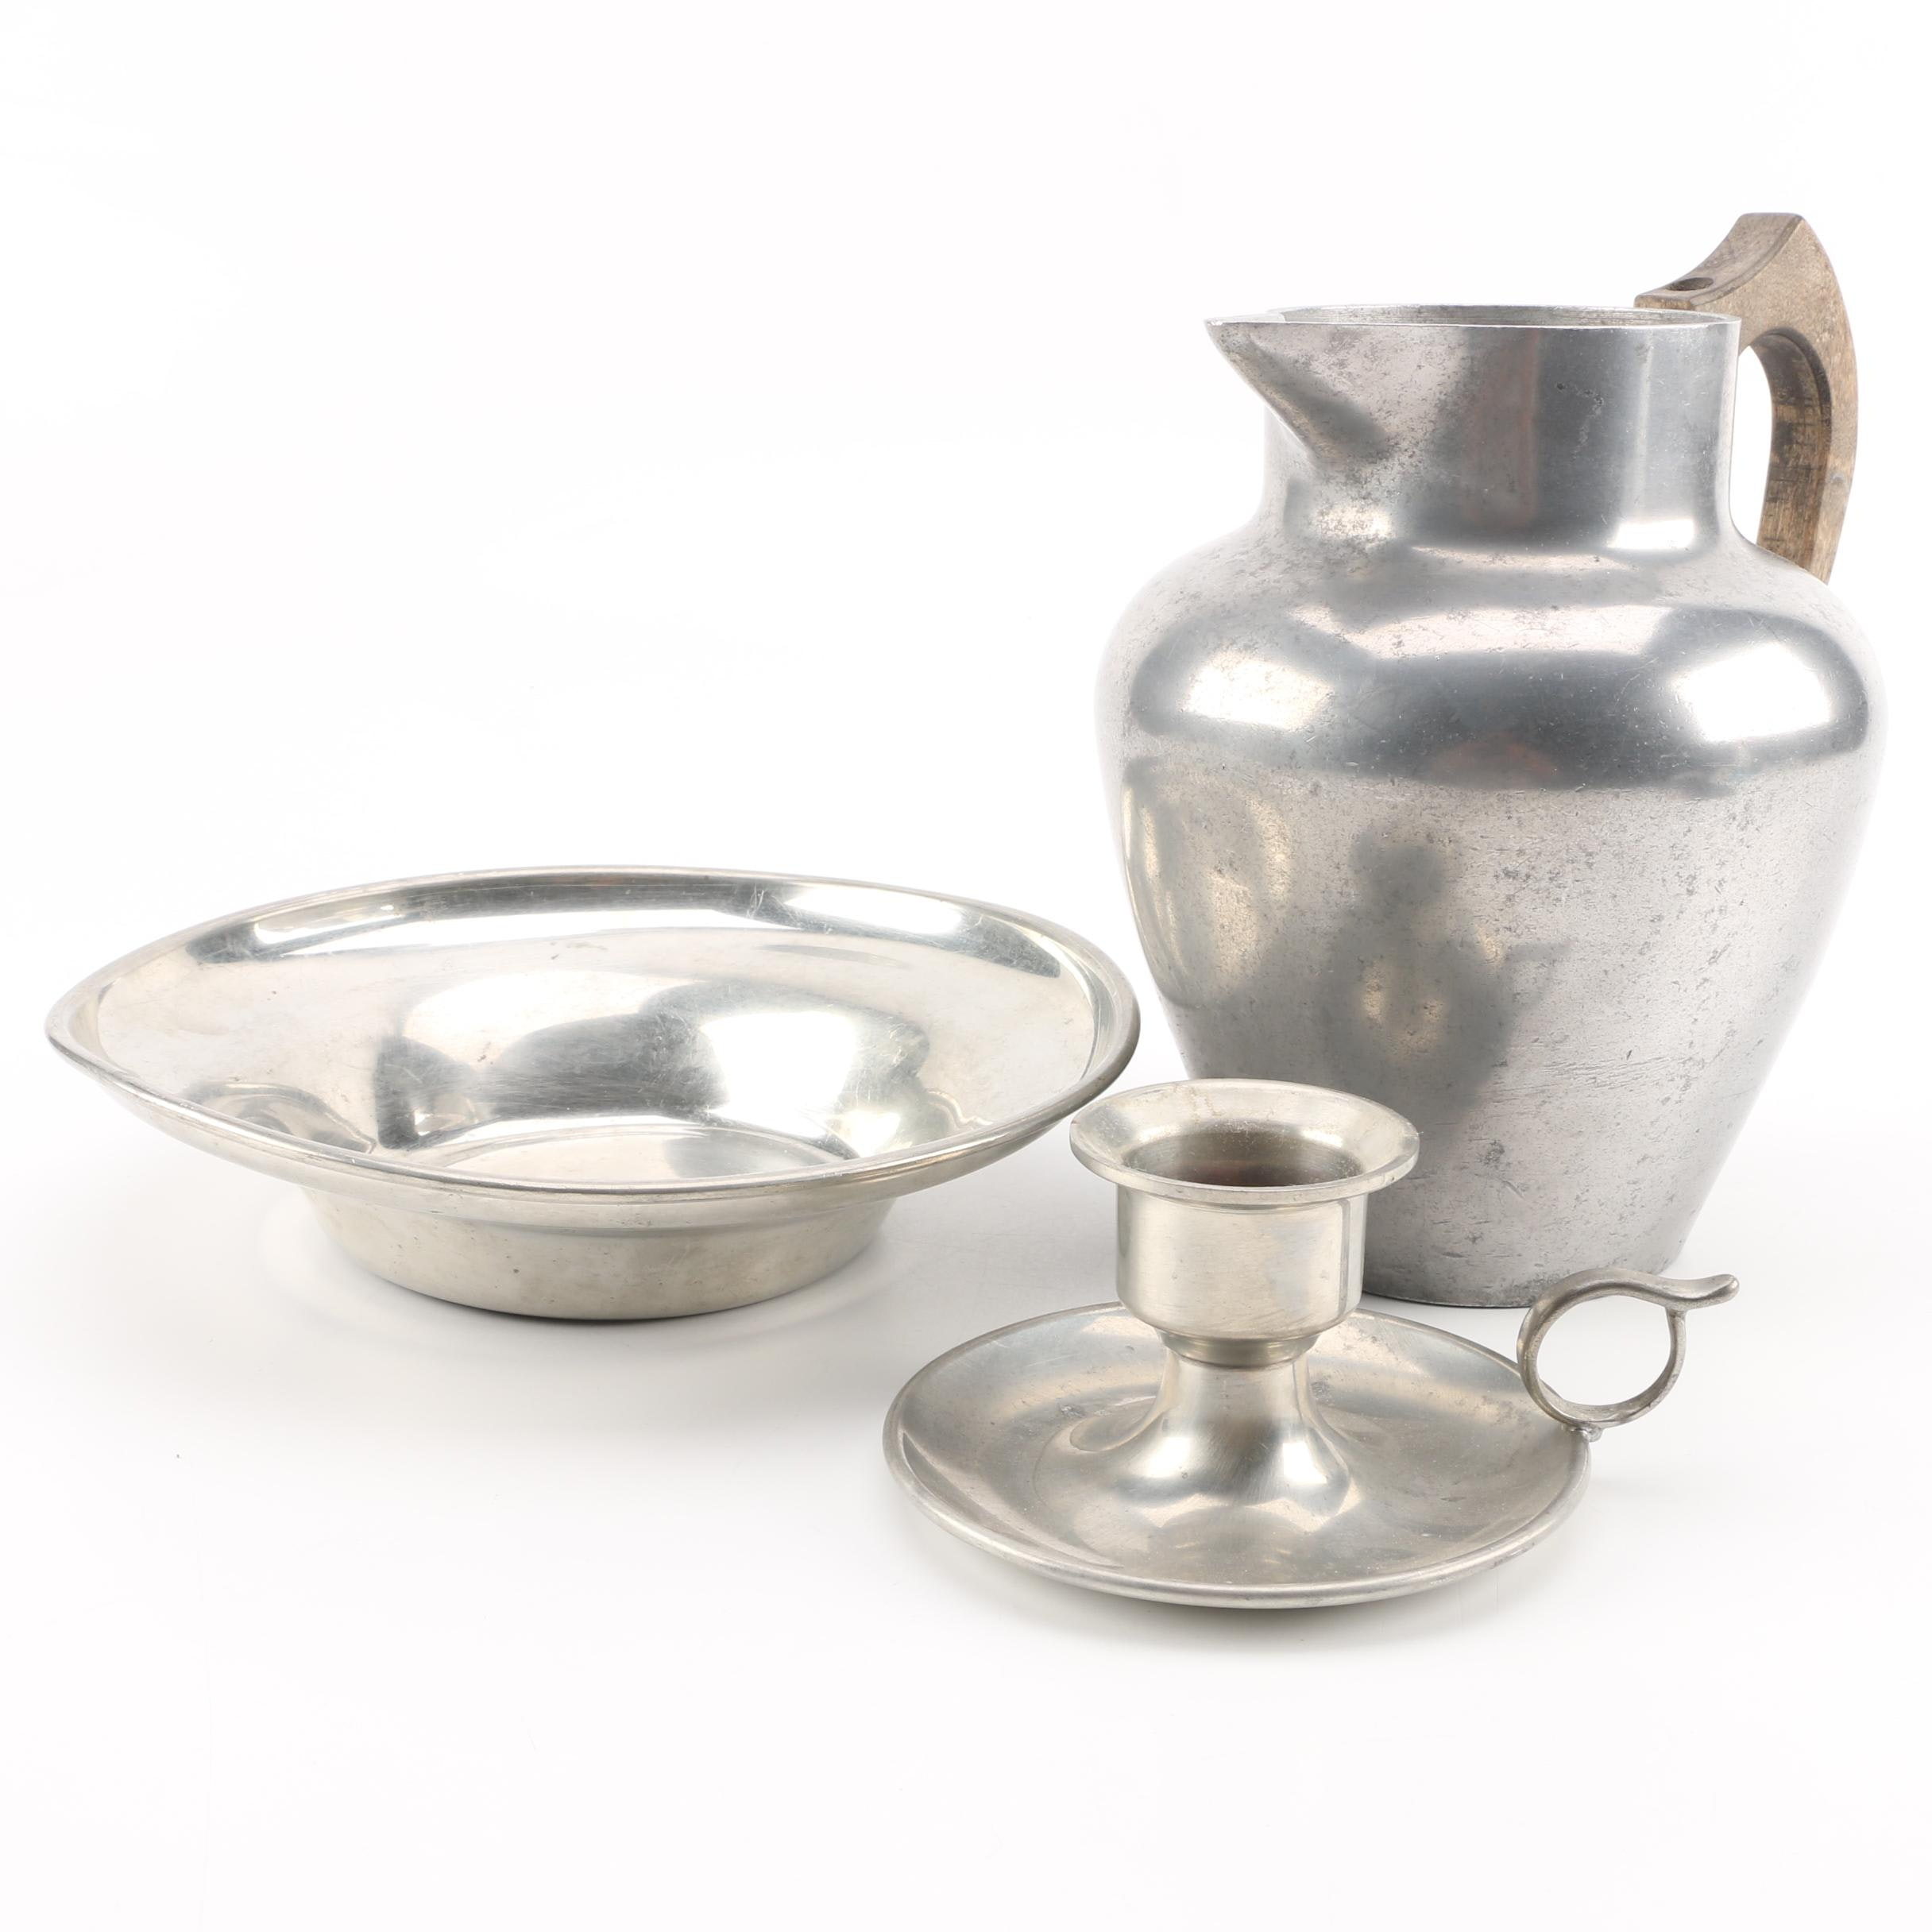 Pewter Pitcher, Bowl, and Candle Holder Including Stieff